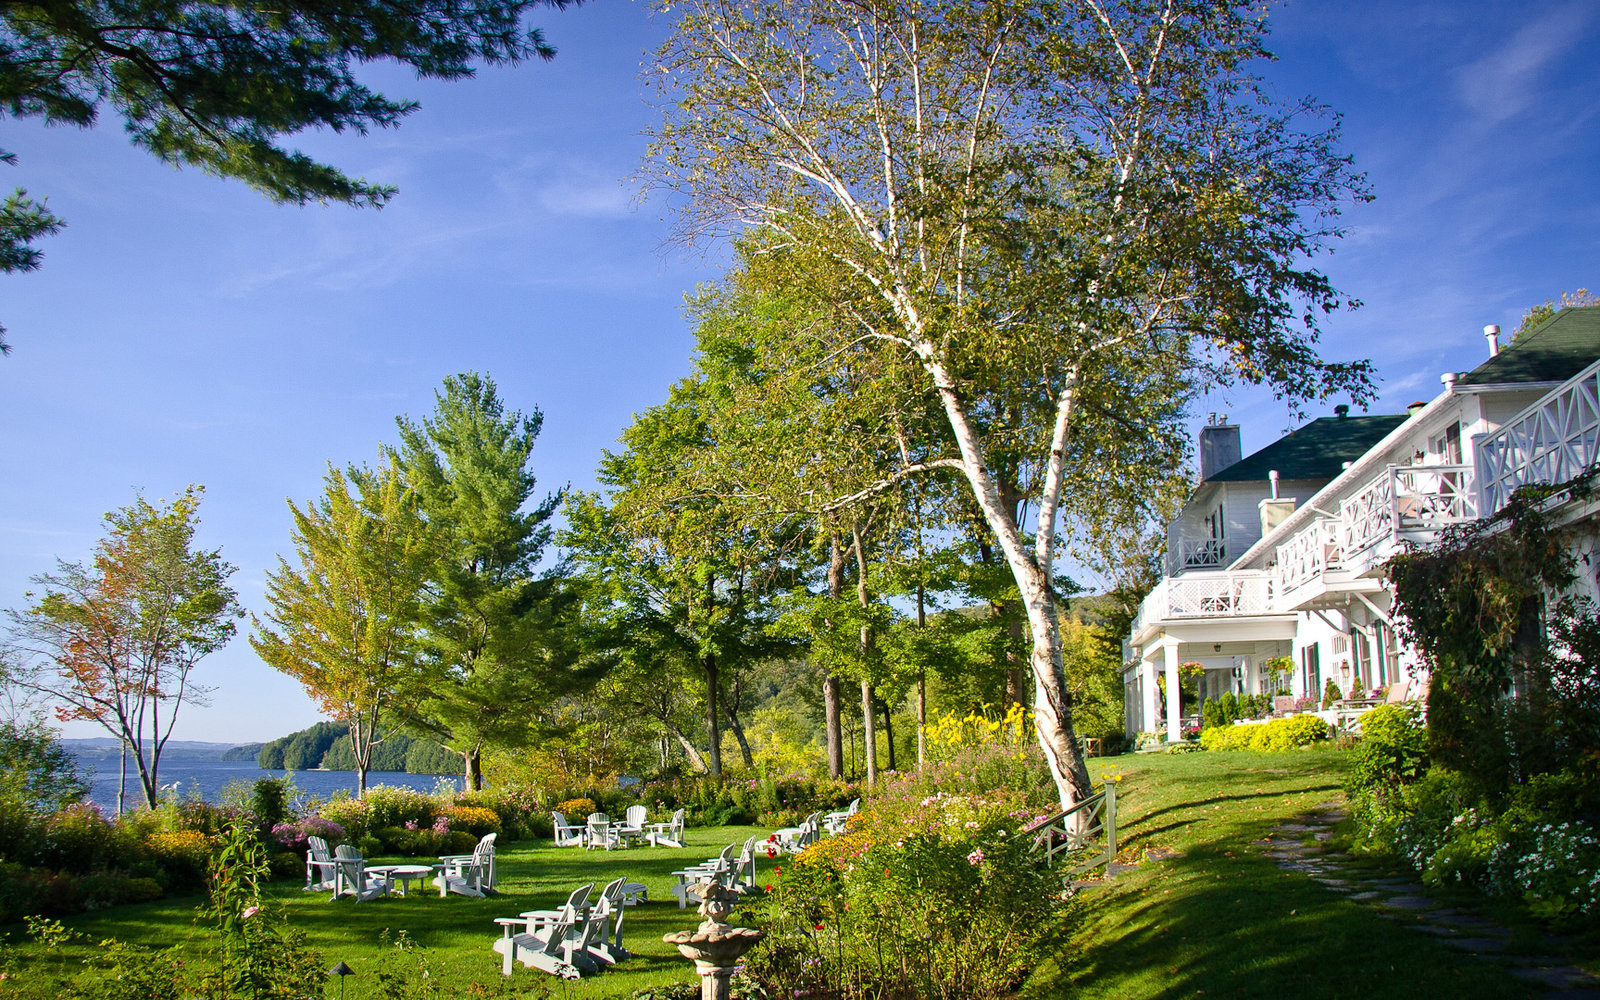 No. 1: Manoir Hovey, North Hatley, Quebec